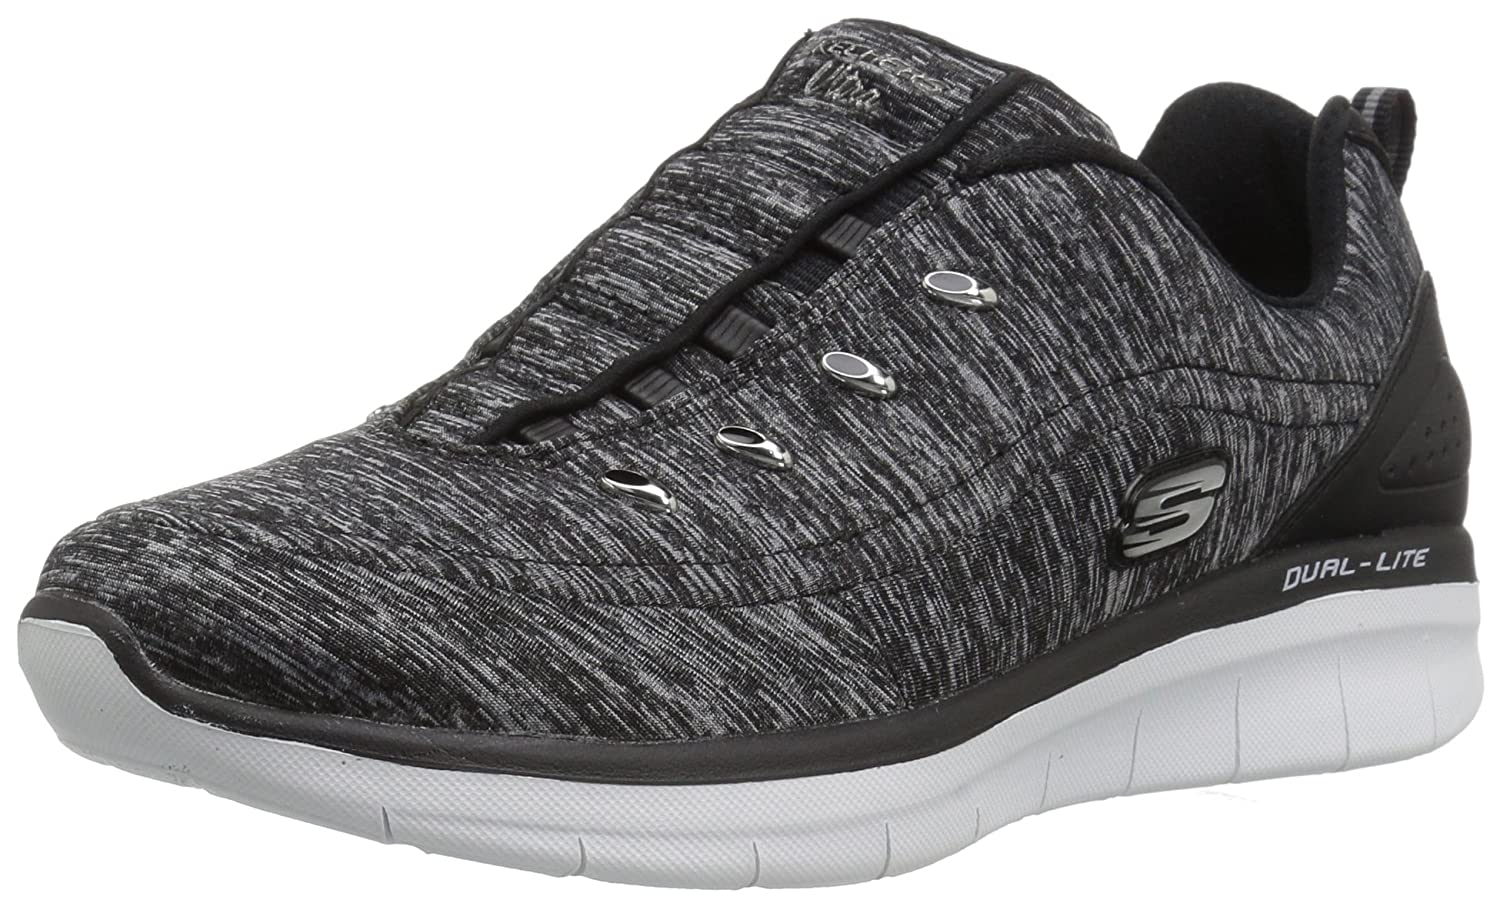 Skechers Women's Synergy 2.0-Scouted Fashion Sneaker B01MZ5QESQ 11 B(M) US|Black/White